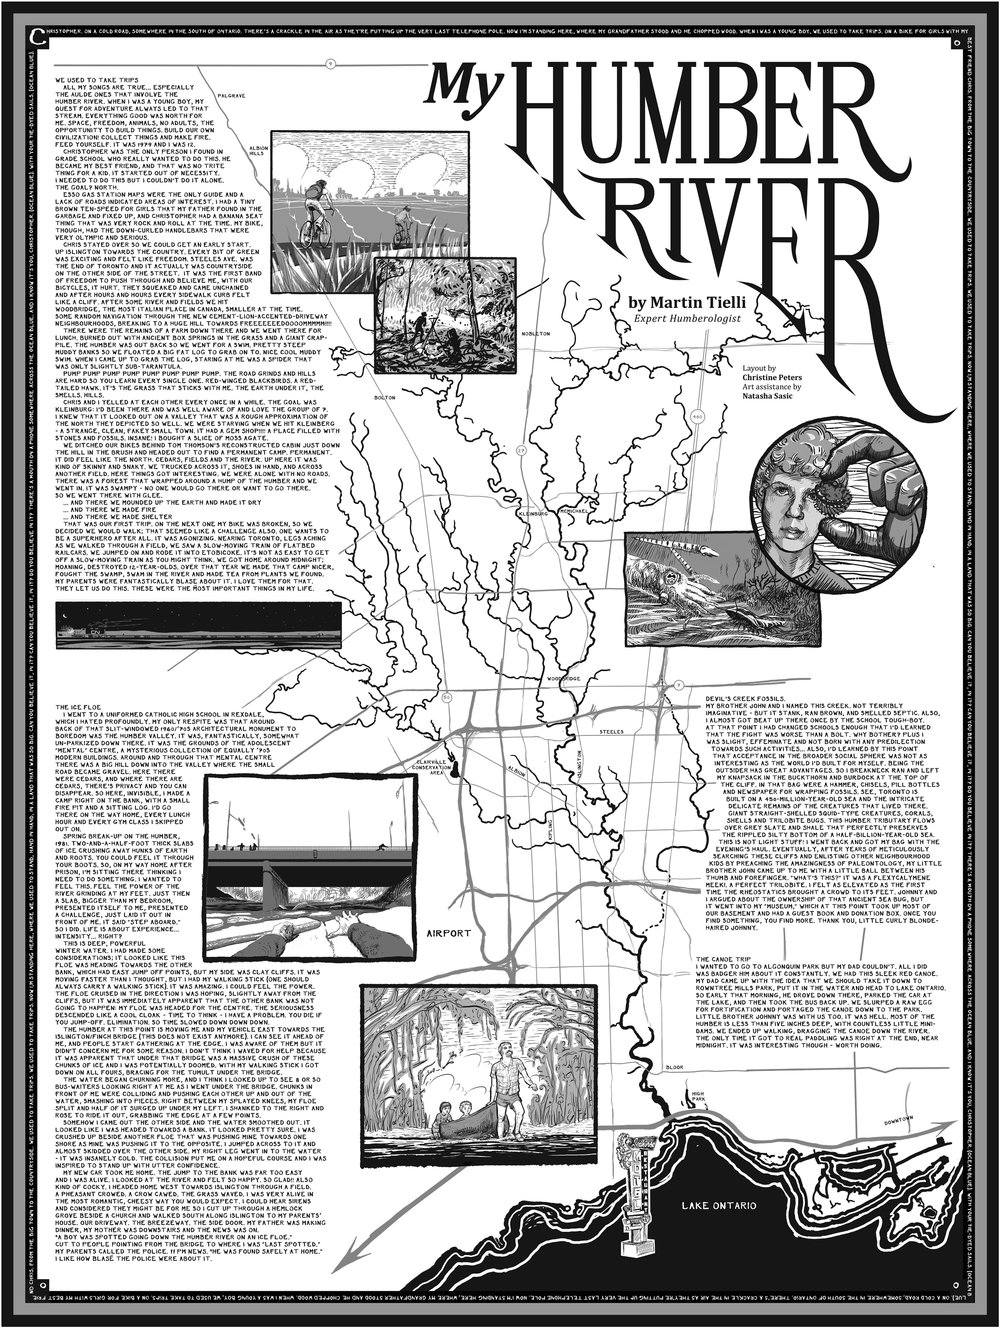 humber-river-map-large.png